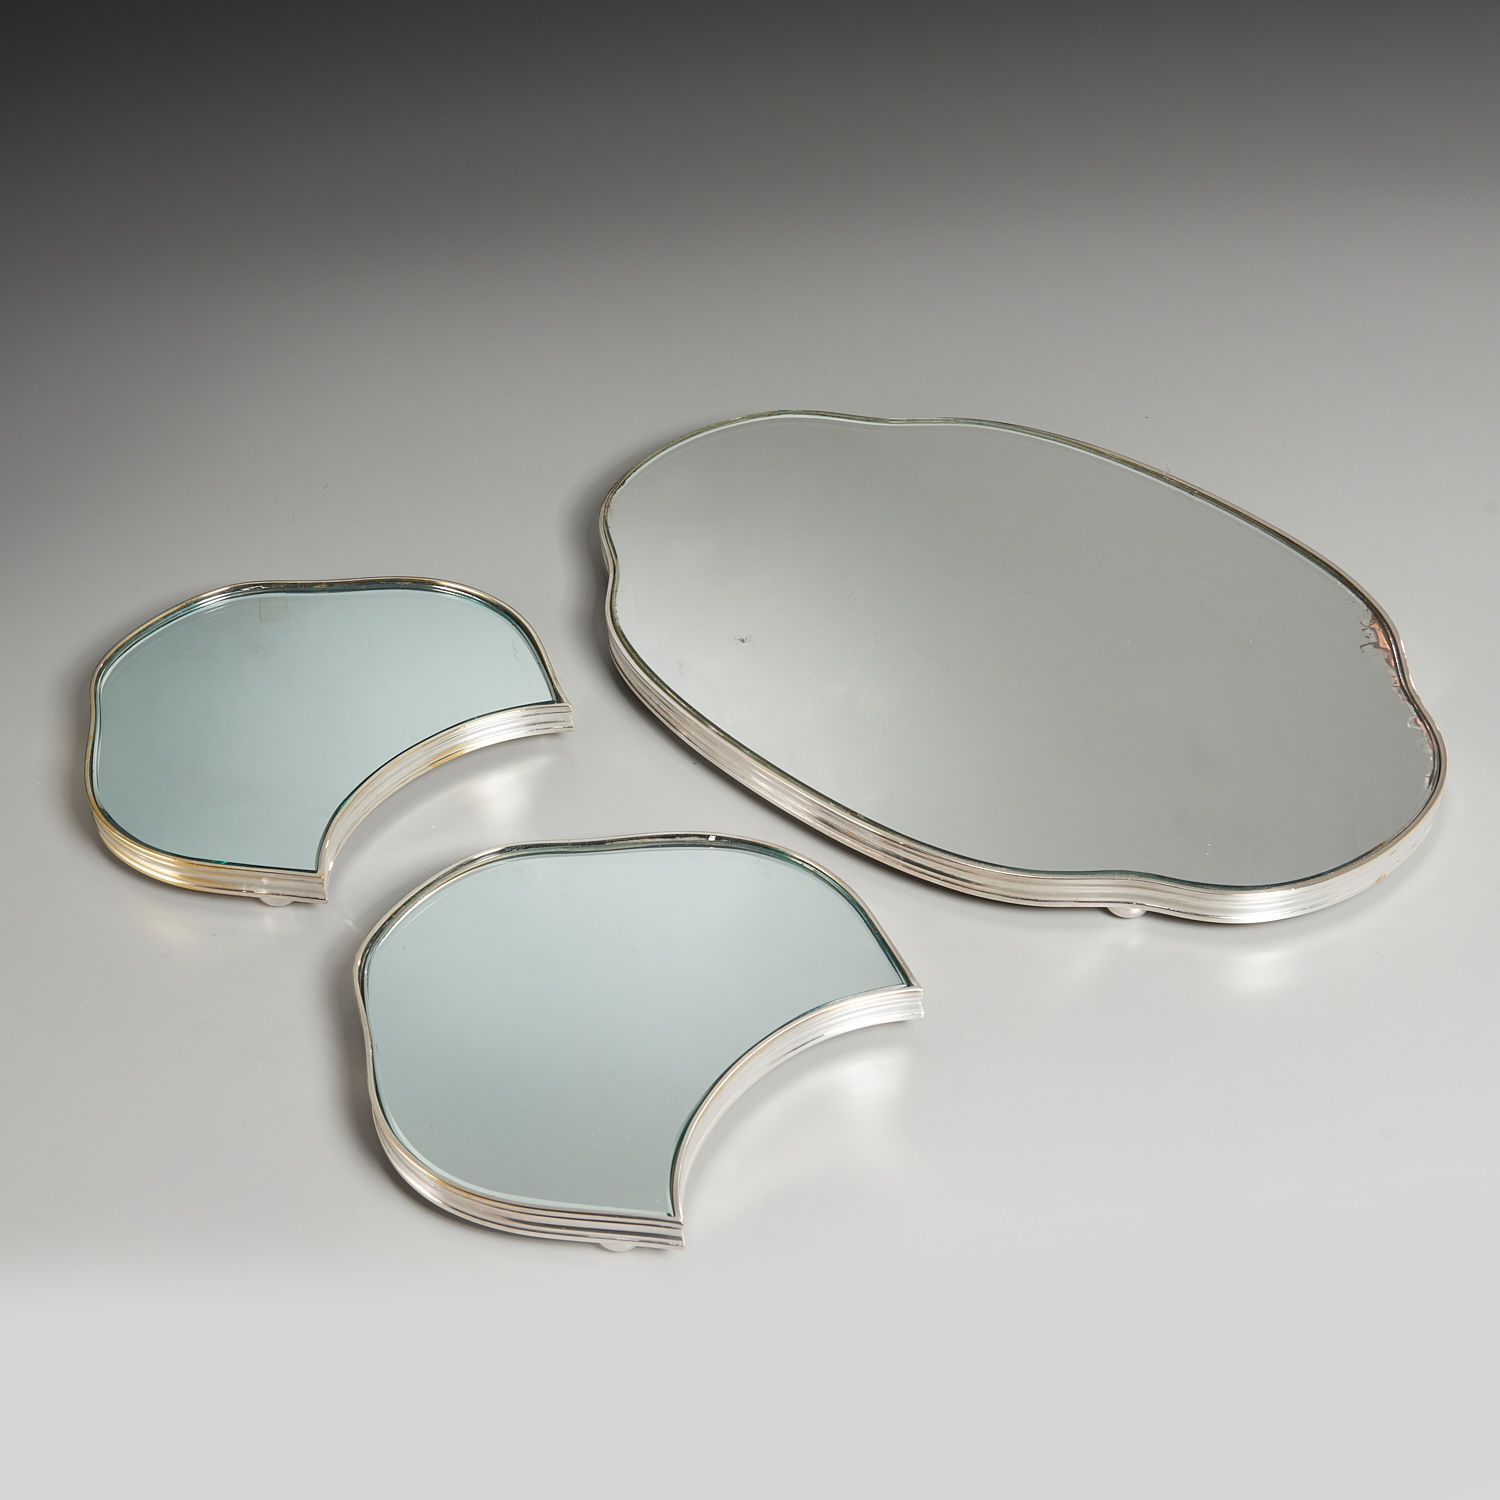 Lot 52 - Old Sheffield Three-Part Mirrored Plateau